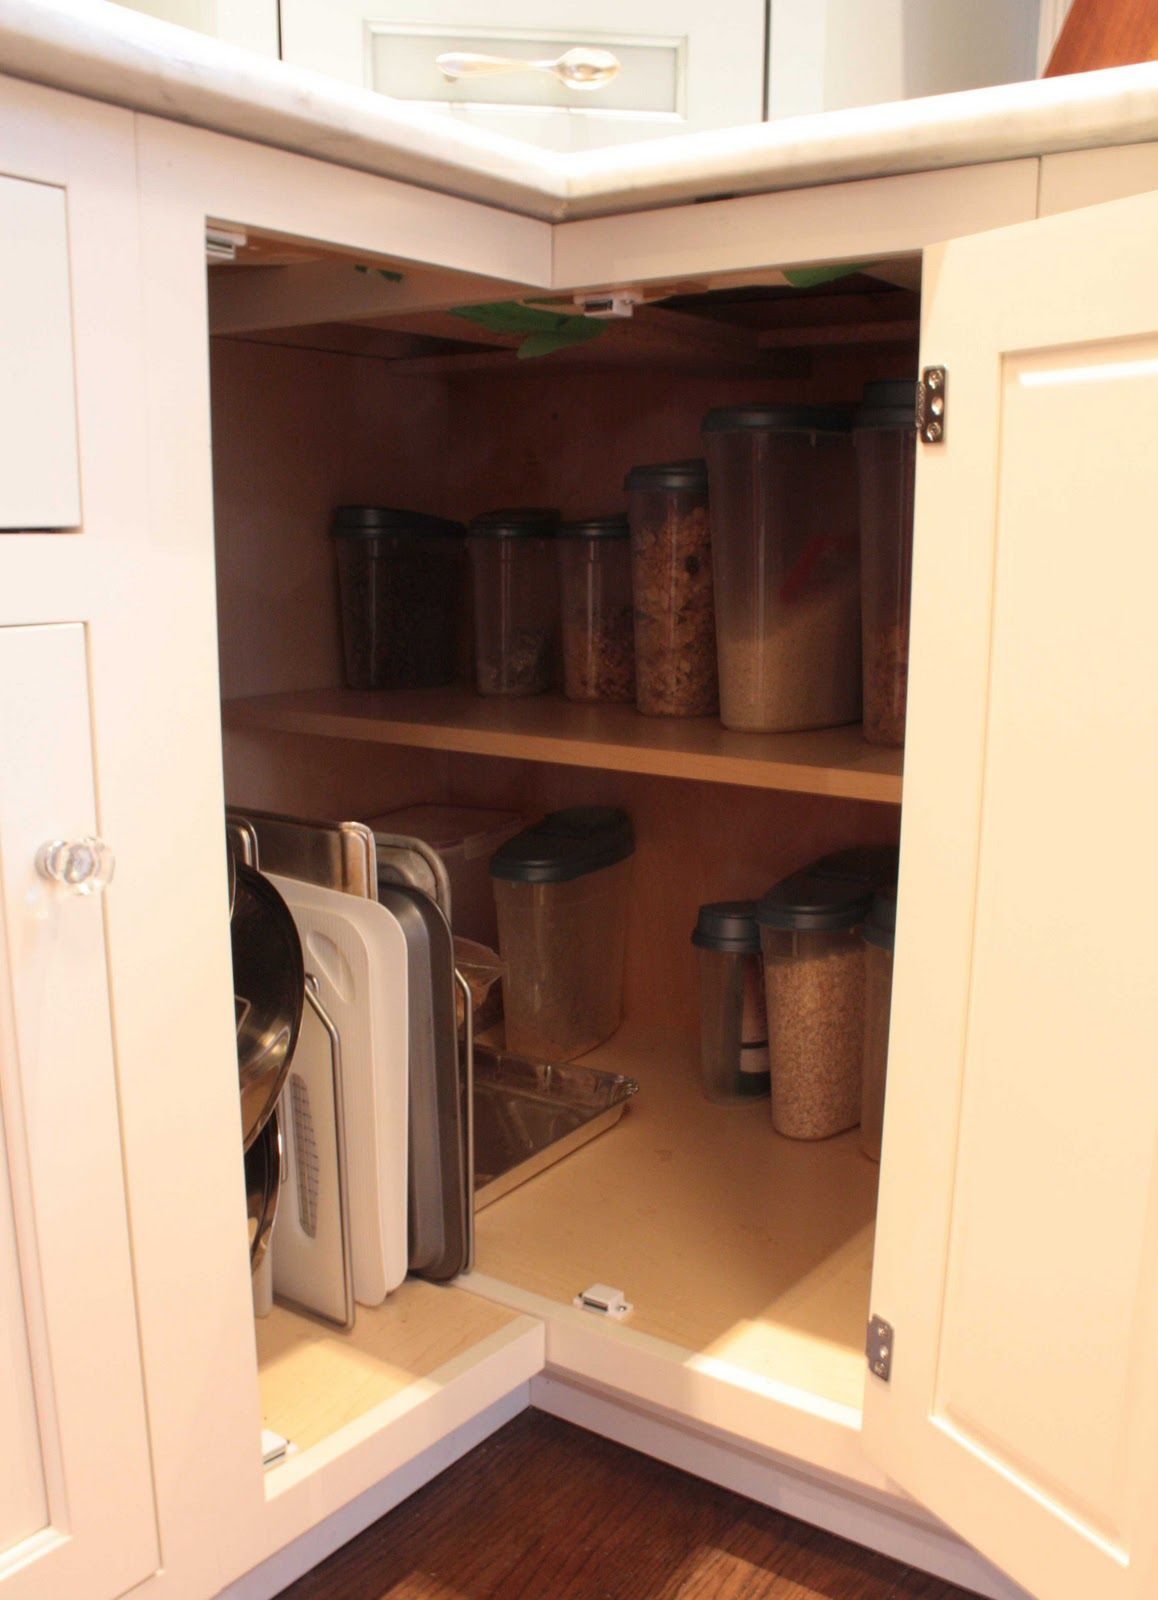 Find This Pin And More On Organization Kitchen Corner Cabinet